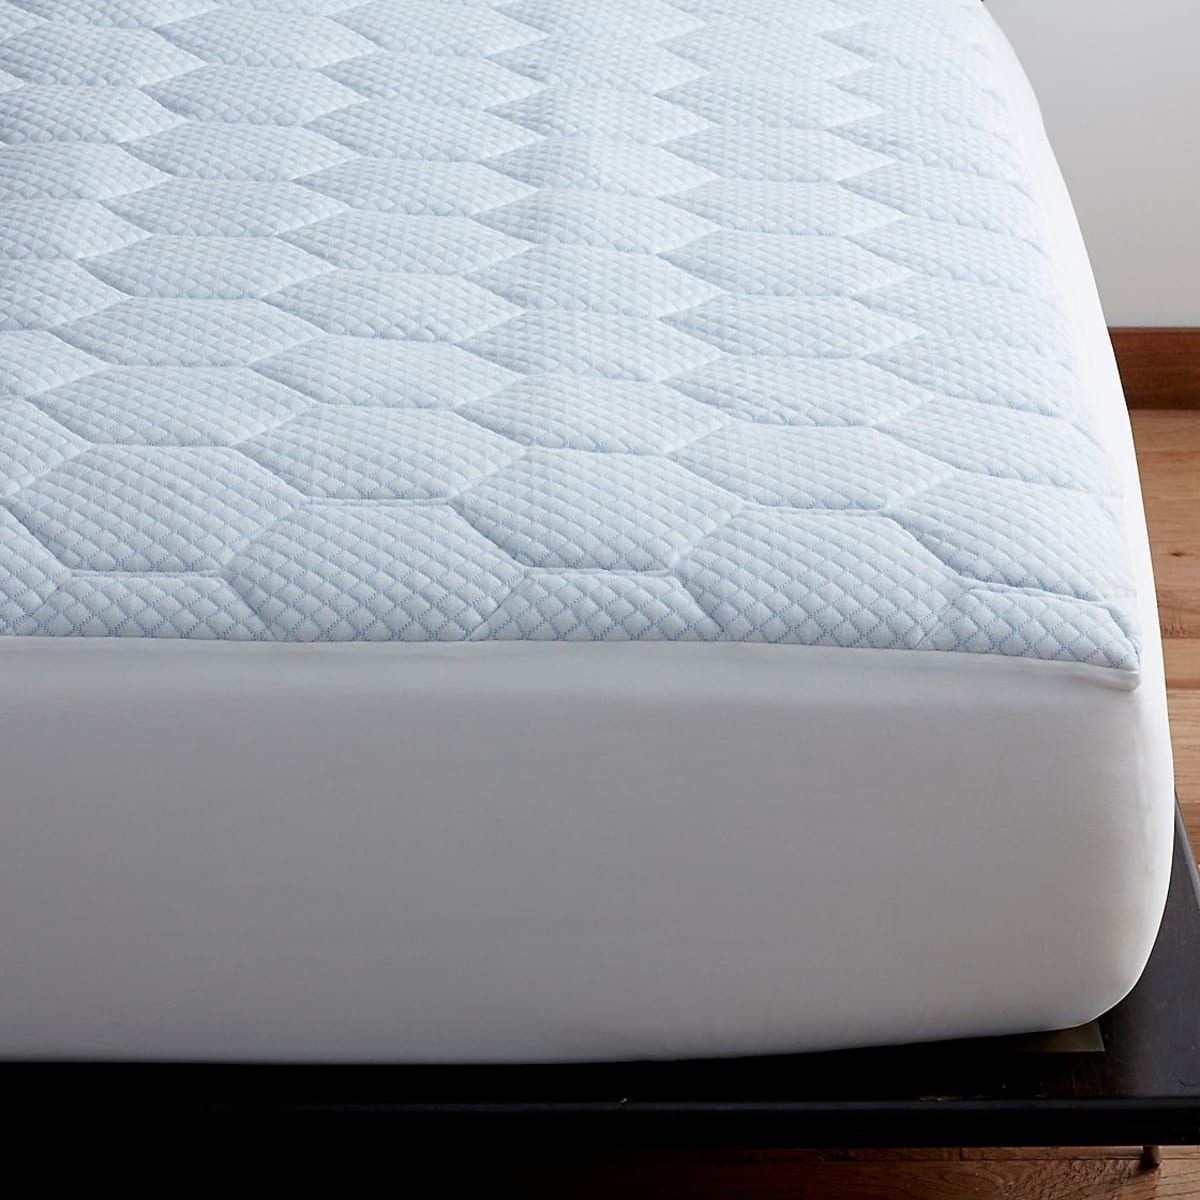 Cooling Gel Memory Foam Mattress Pad The Company Store